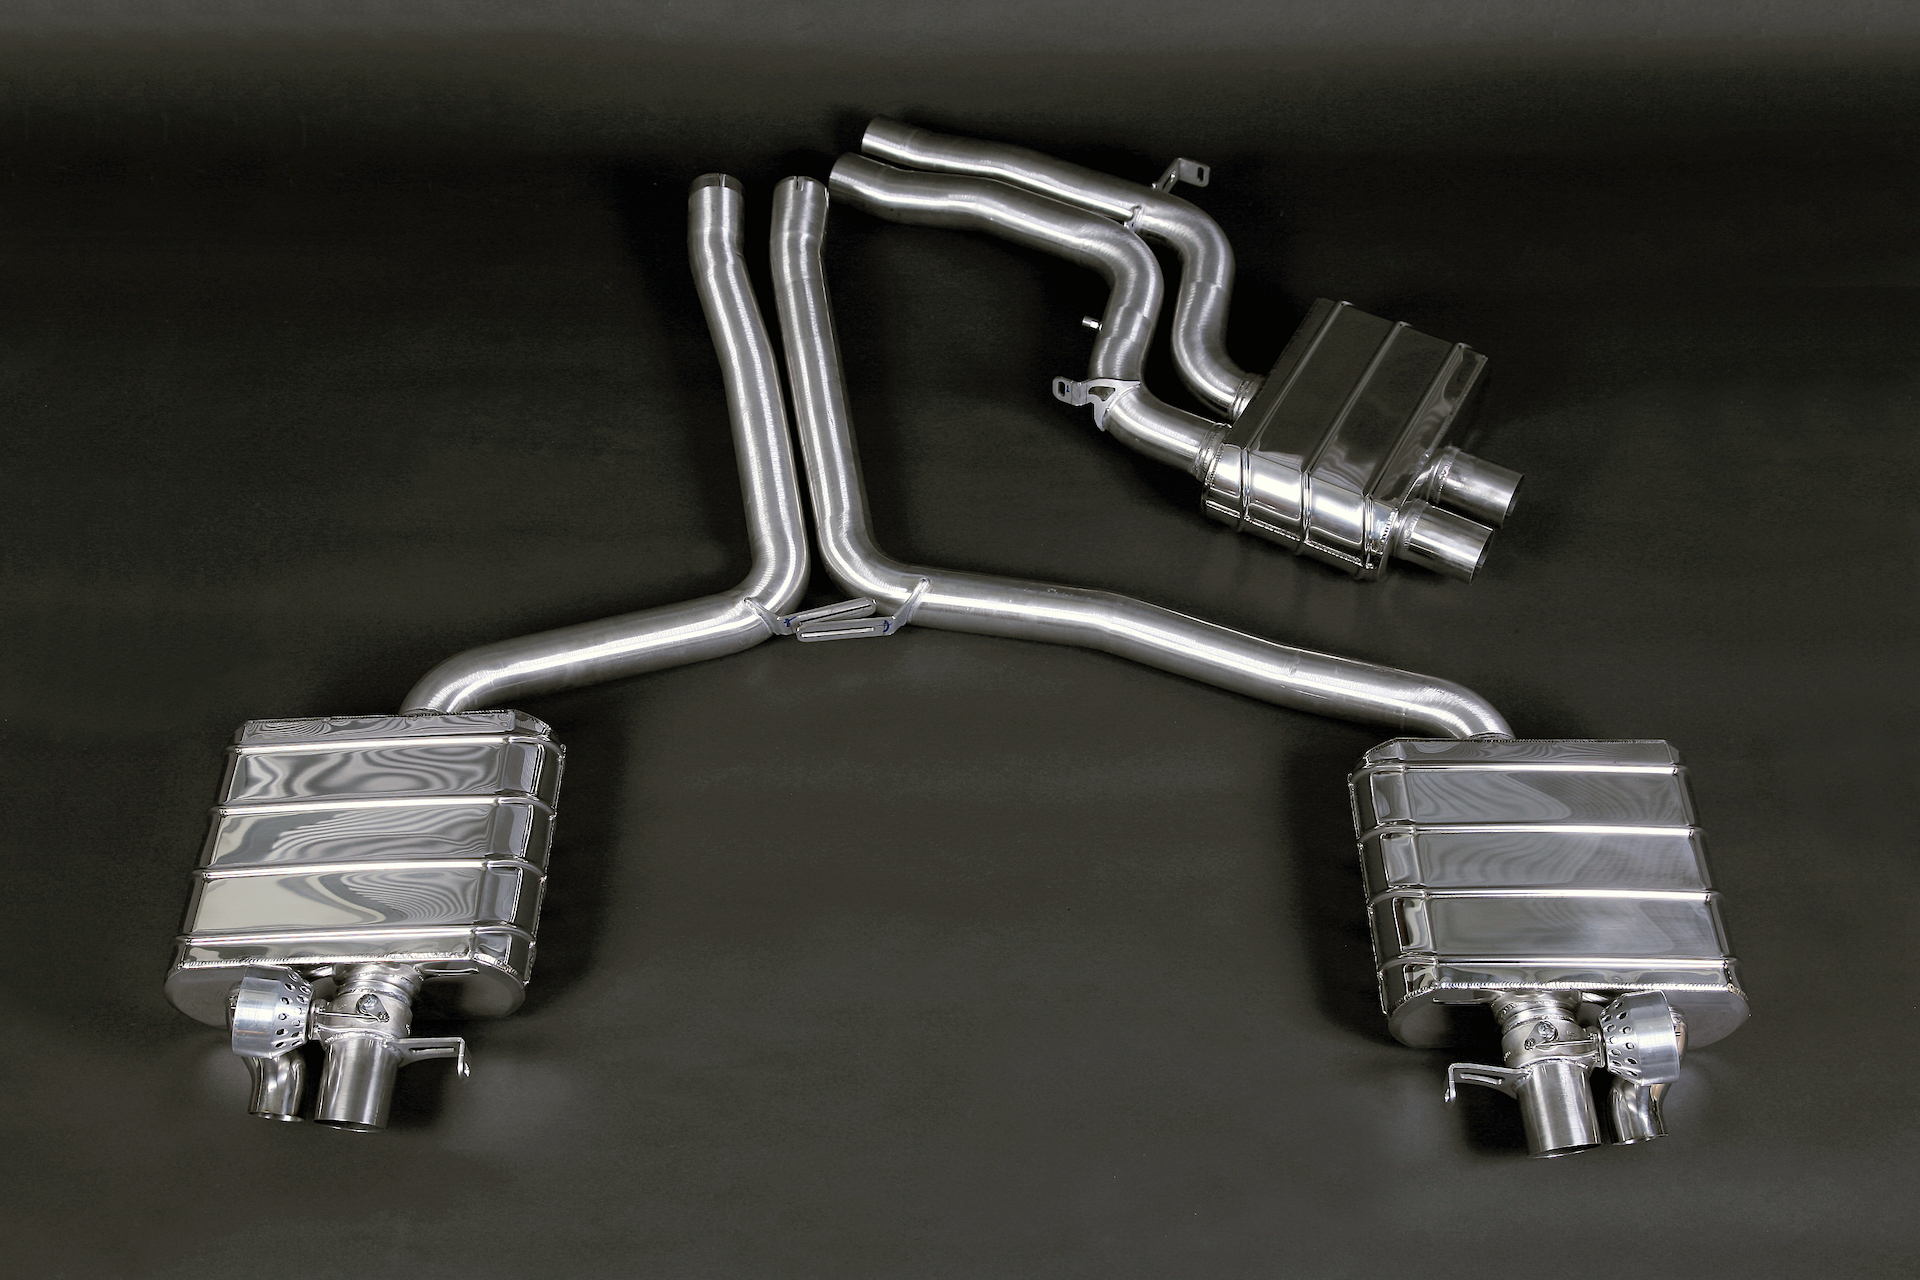 Capristo RS5 (B8) Valved Exhaust System & Mid-Pipes (No Remote)